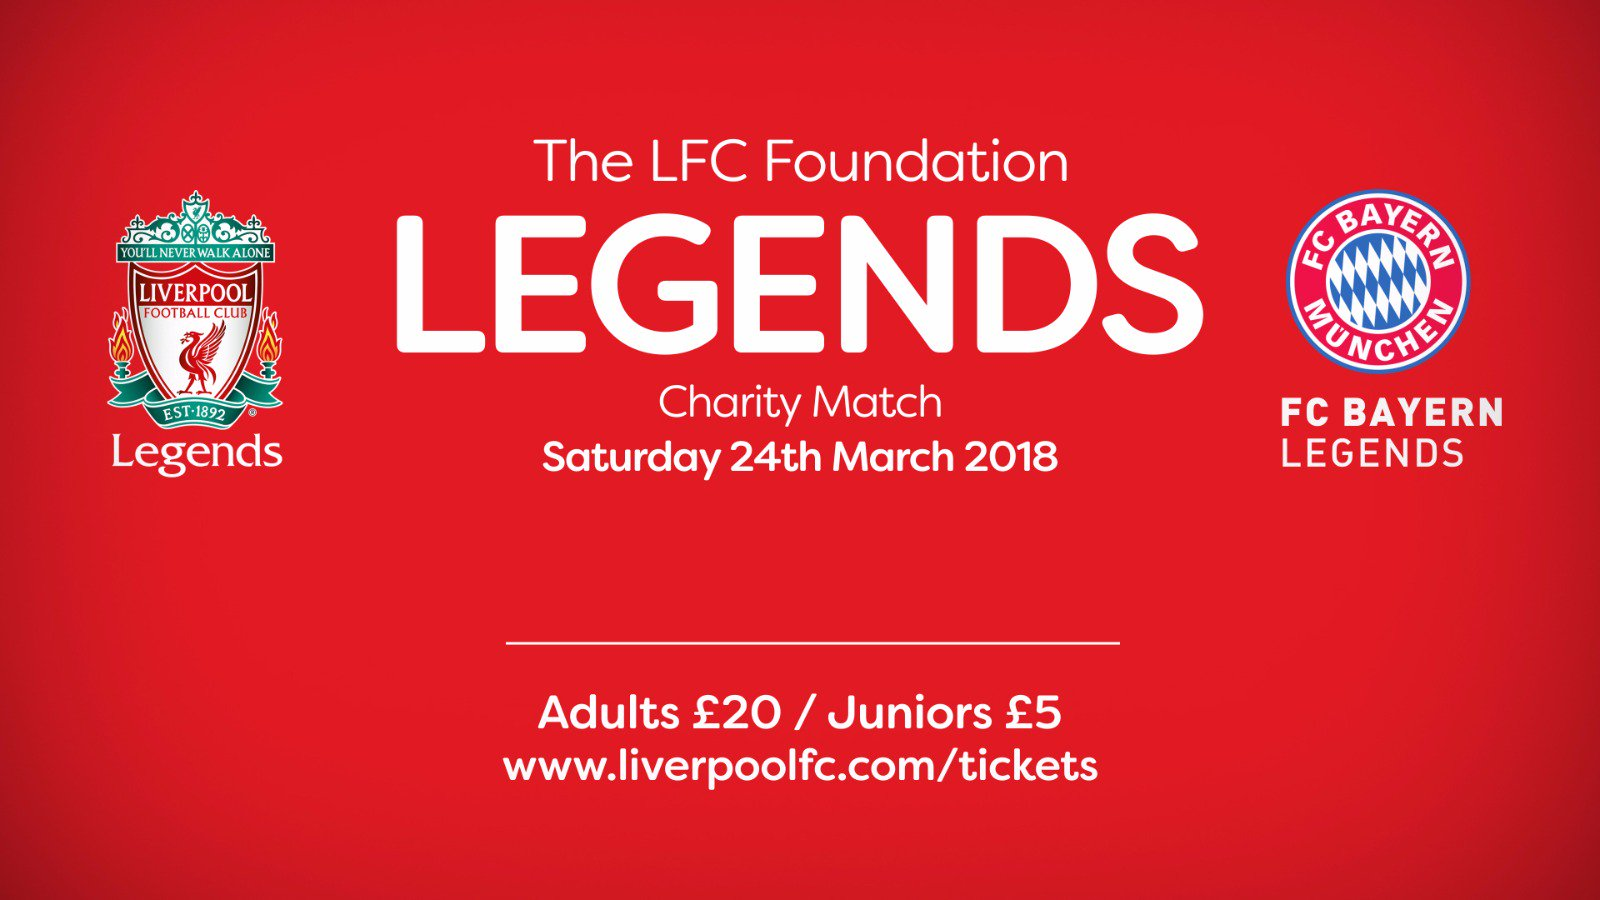 Gerrard, Alonso, Kuyt and many more... ⚽  Don't miss #LFCFCBLegends: https://t.co/PFu6MJPpSO https://t.co/9TcOTxd64R